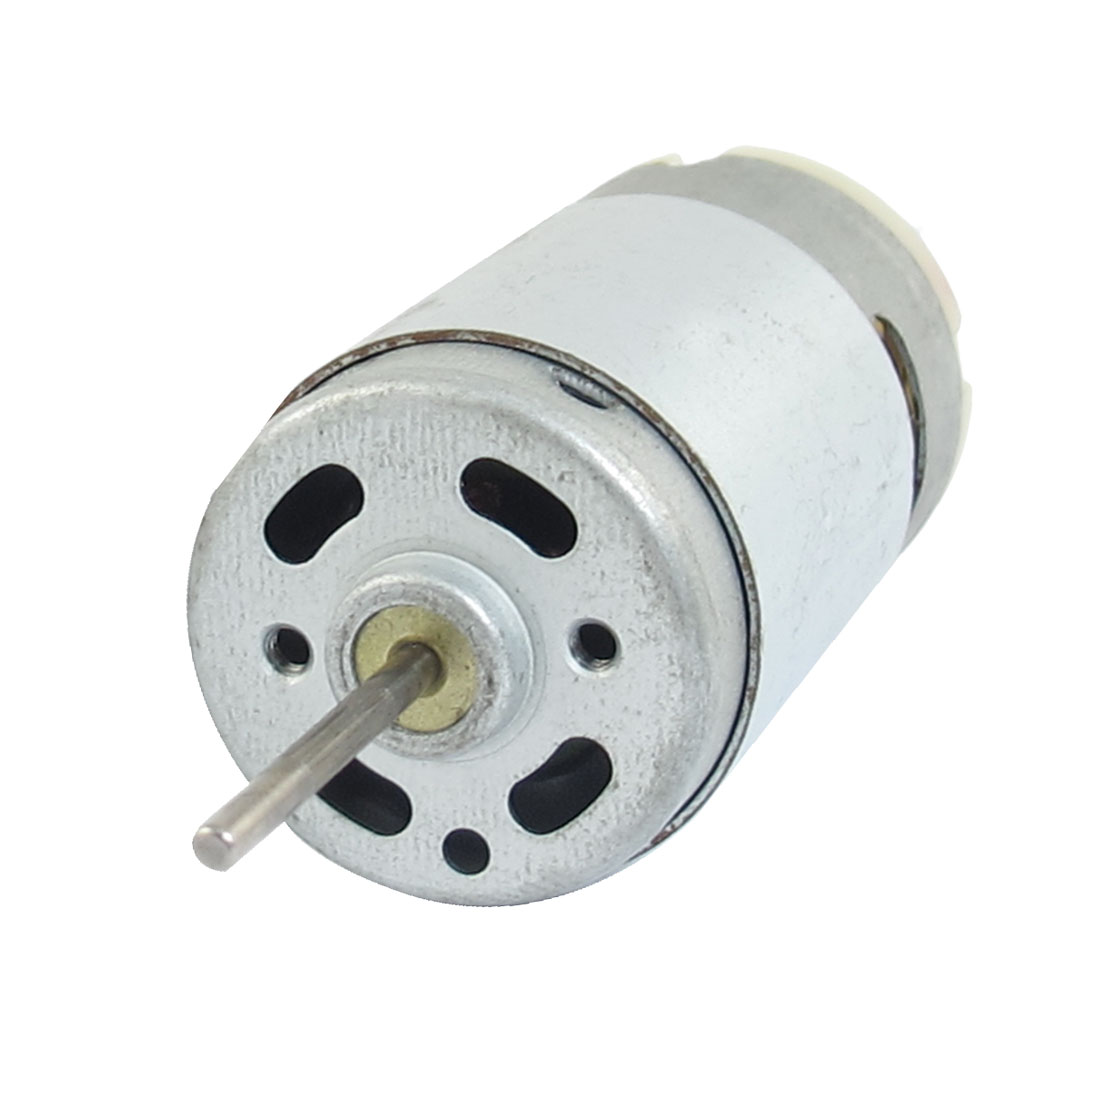 3400RPM-DC-24V-2-5mm-Shaft-Diameter-2-Pin-Terminals-Electric-Motor